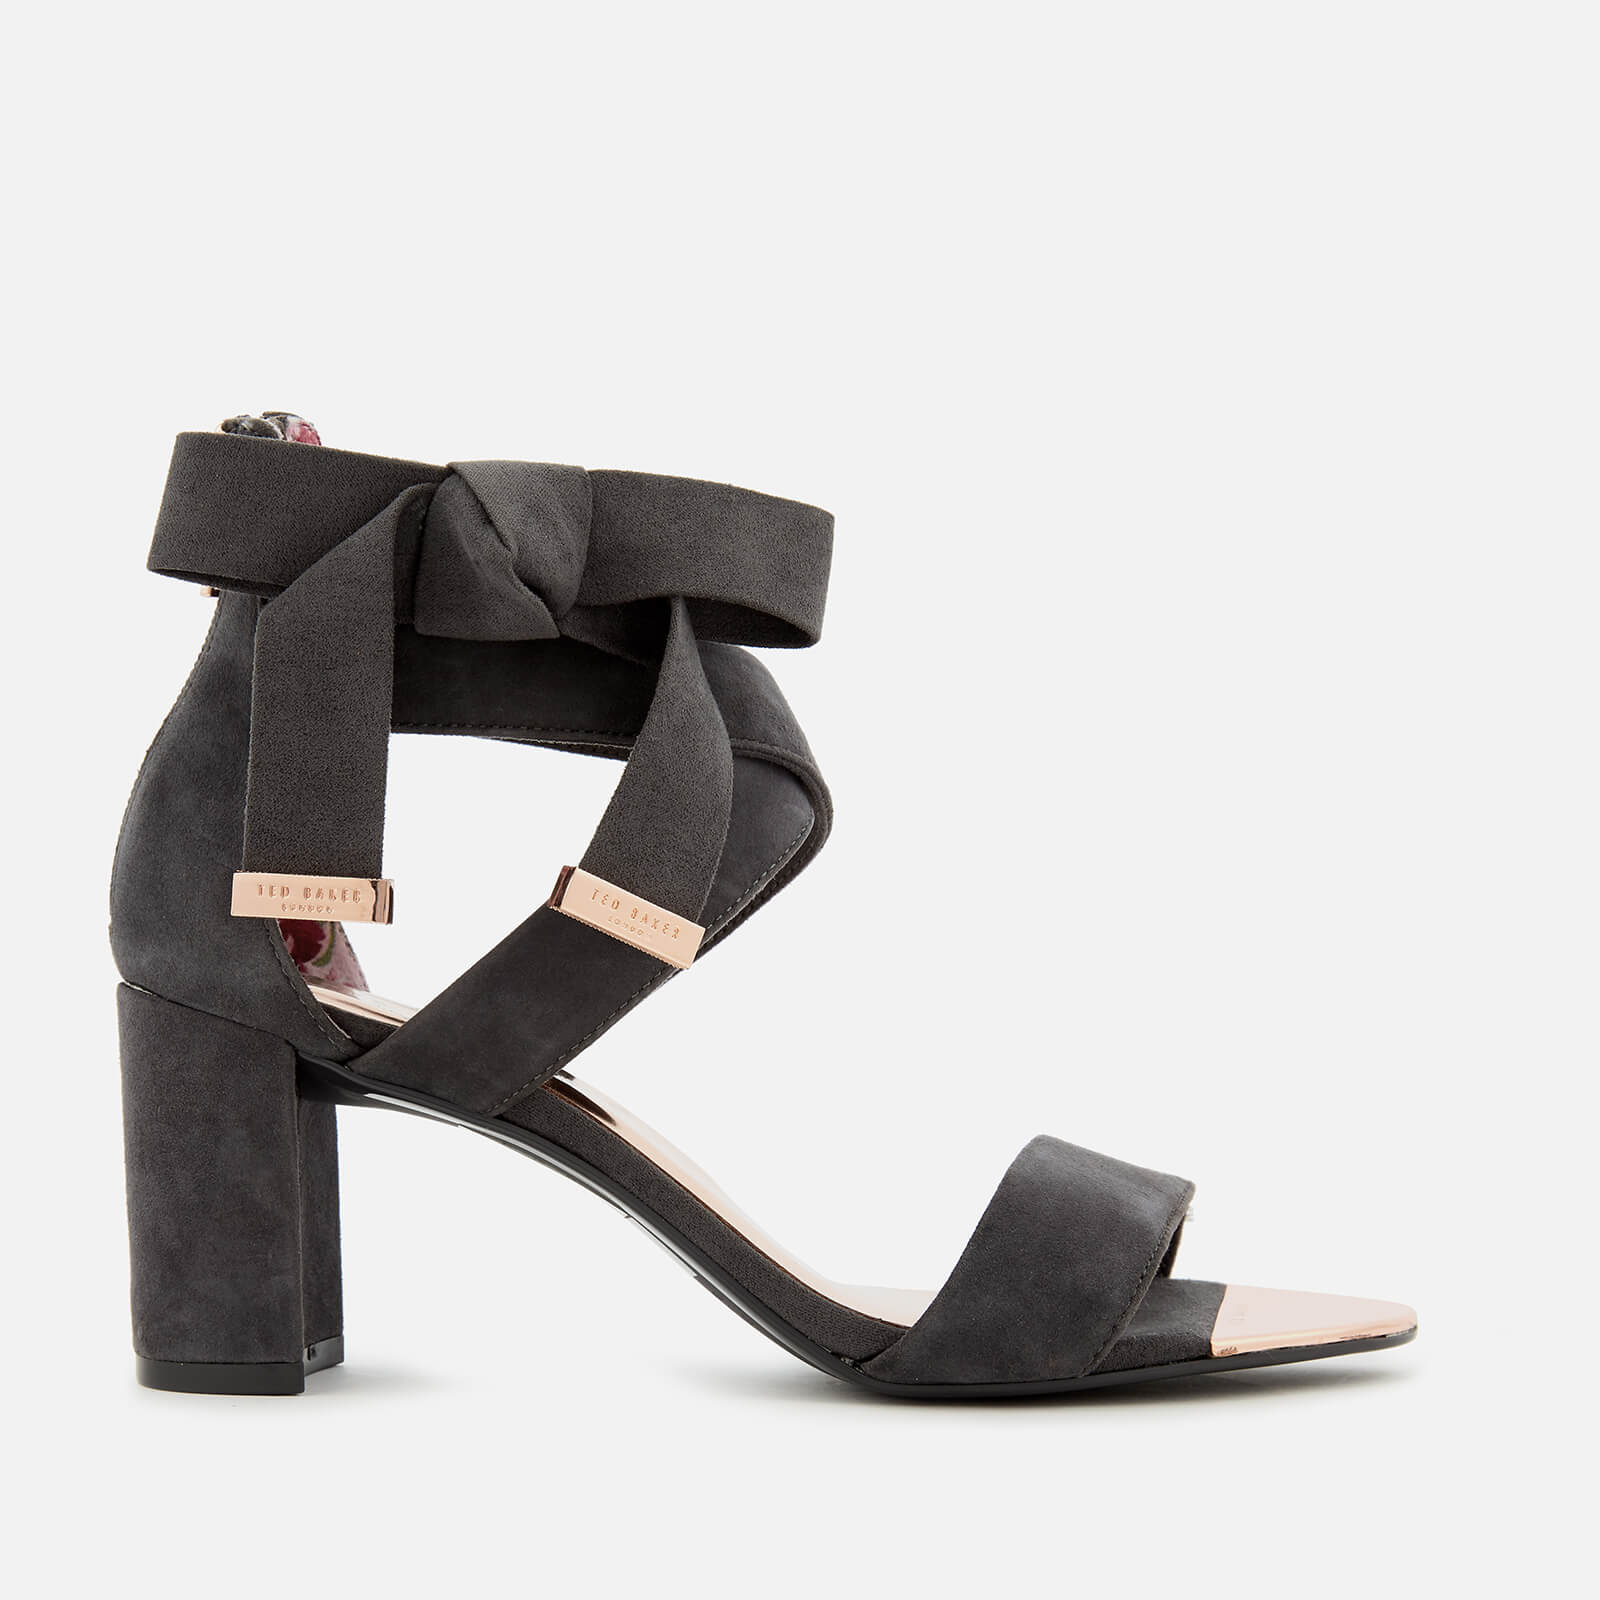 51dc0148319 Ted Baker Women s Noxen 2 Suede Block Heeled Sandals - Charcoal ...